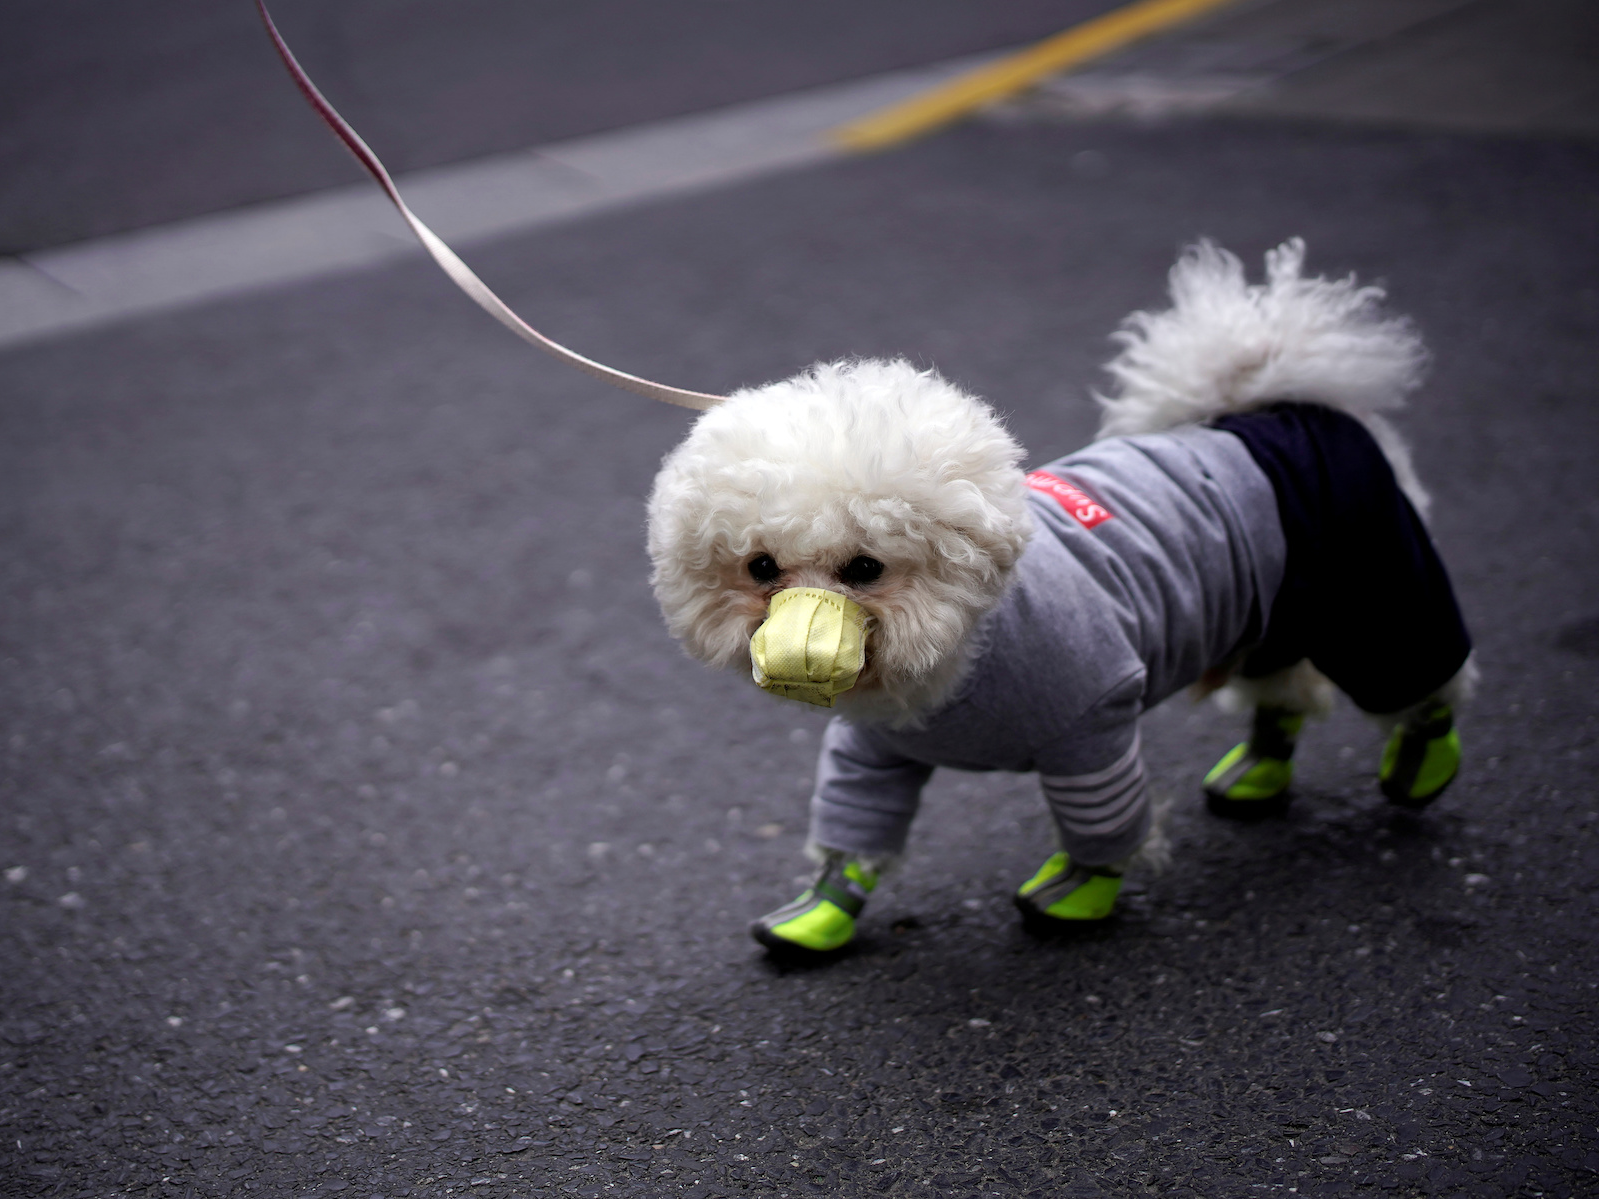 A dog in Shanghai on March 2. (Aly Song/REUTERS)